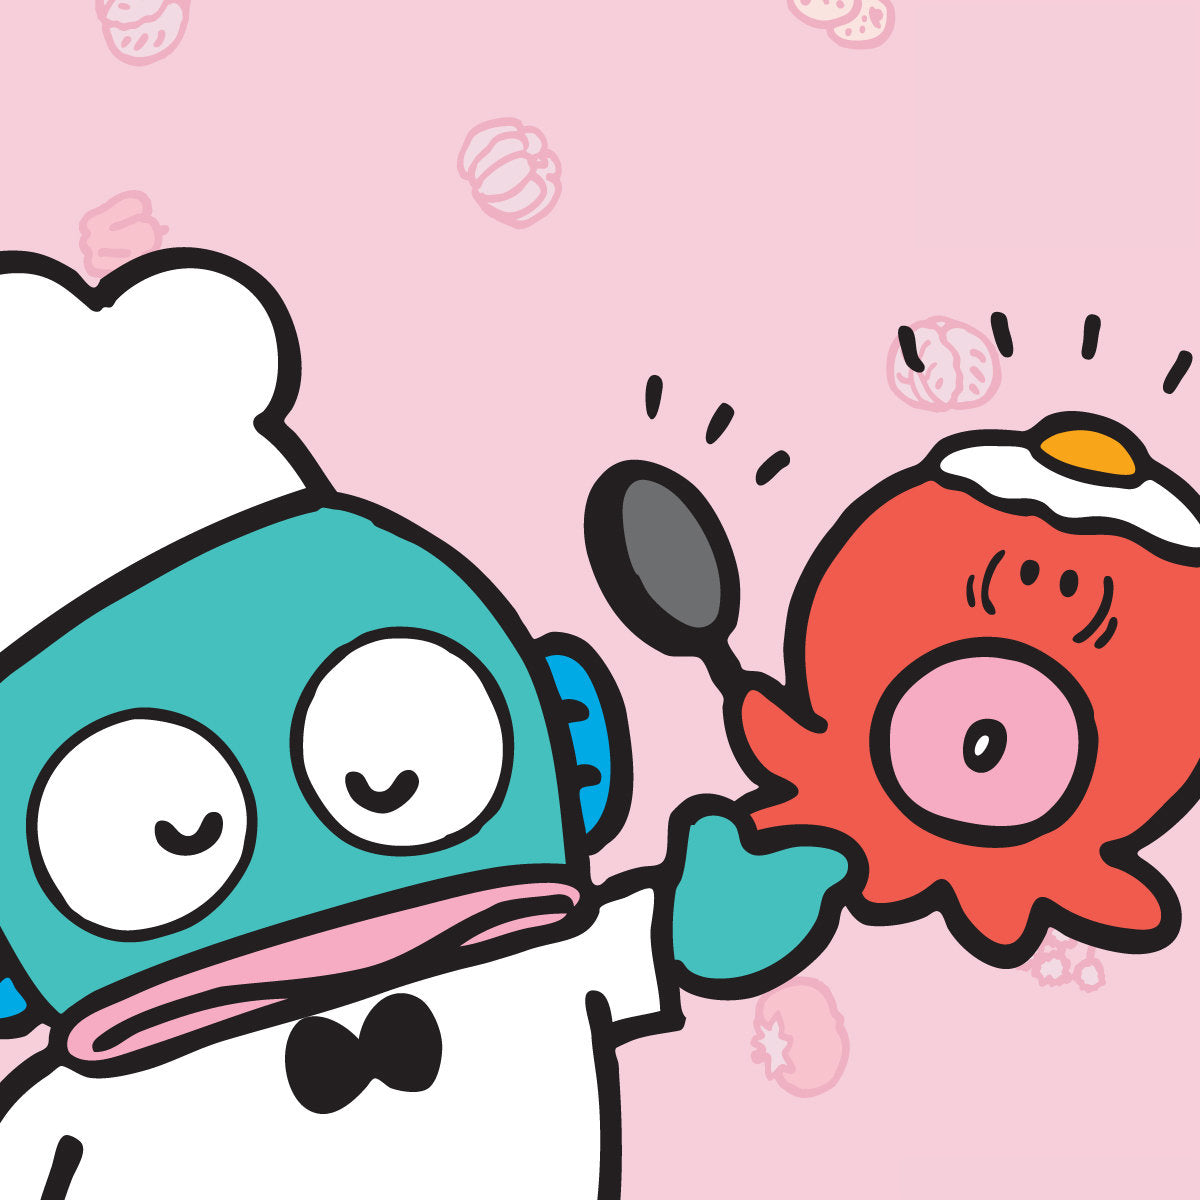 Sanrio Friend of the Month - Hangyodon